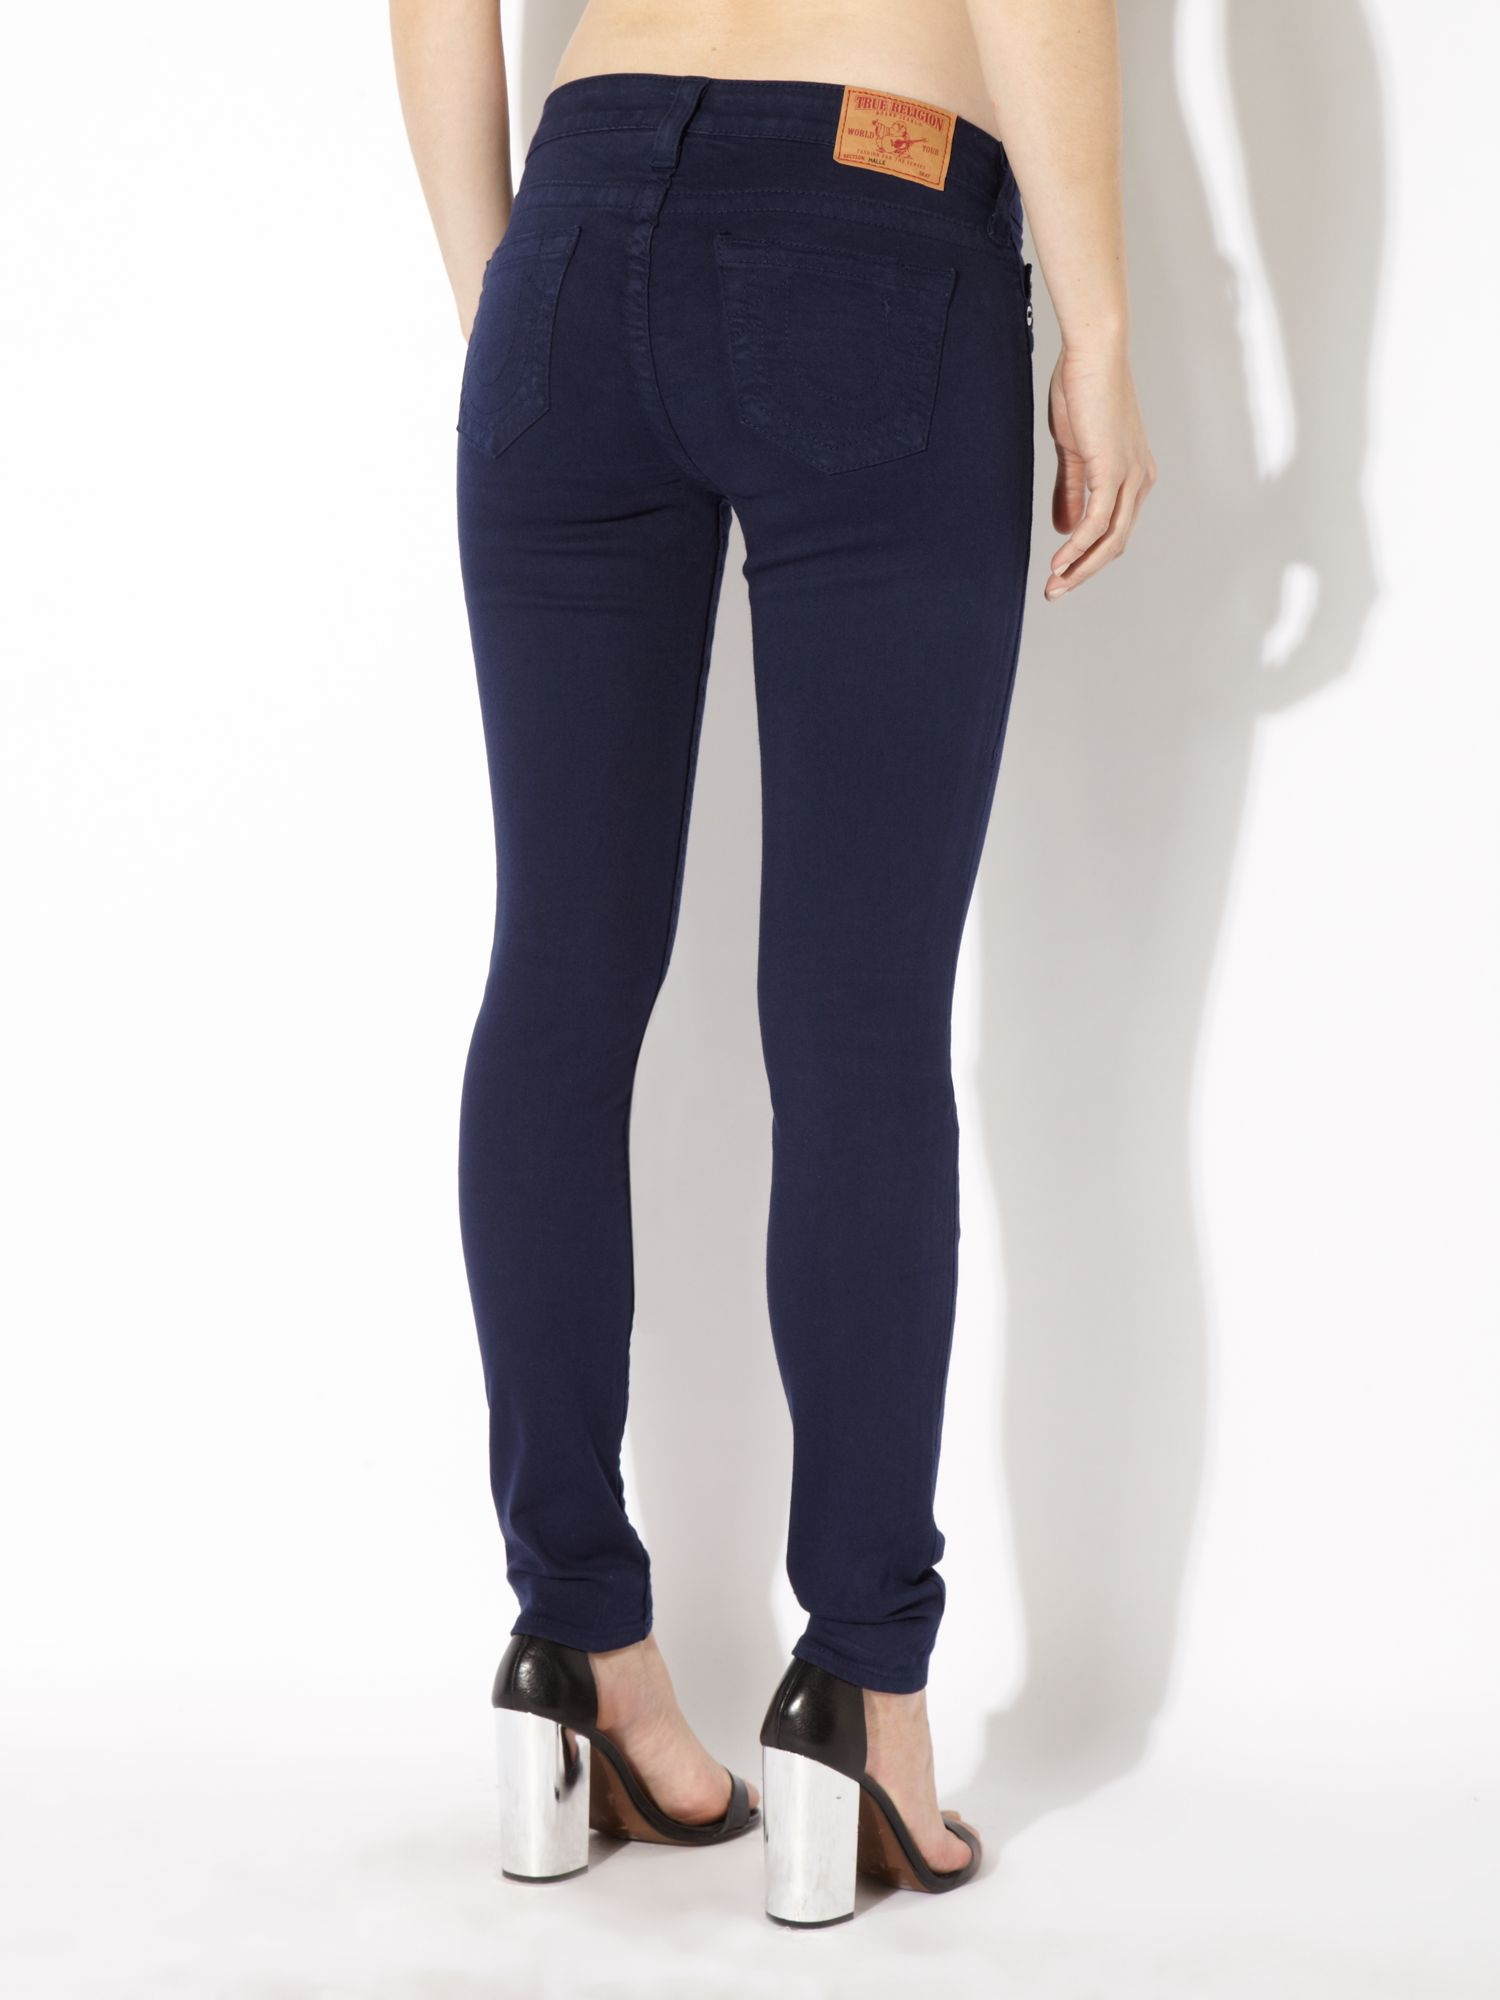 Halle skinny jeggings in Navy